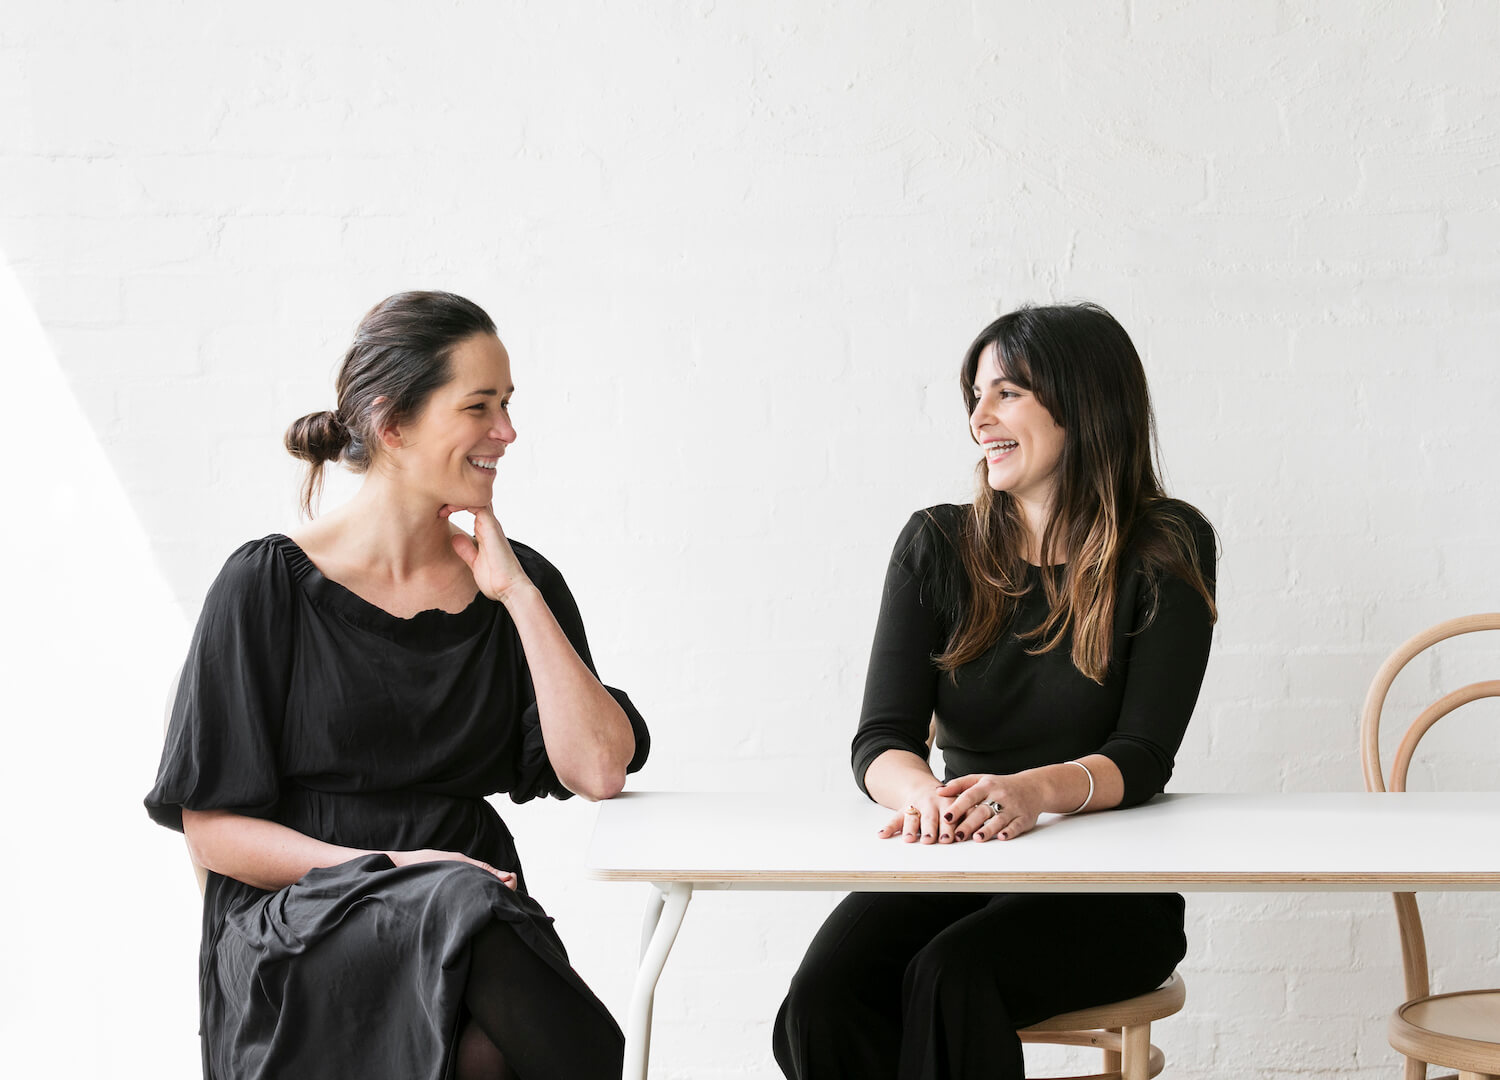 Interview with Sarah Cosentino and Felicity Slattery